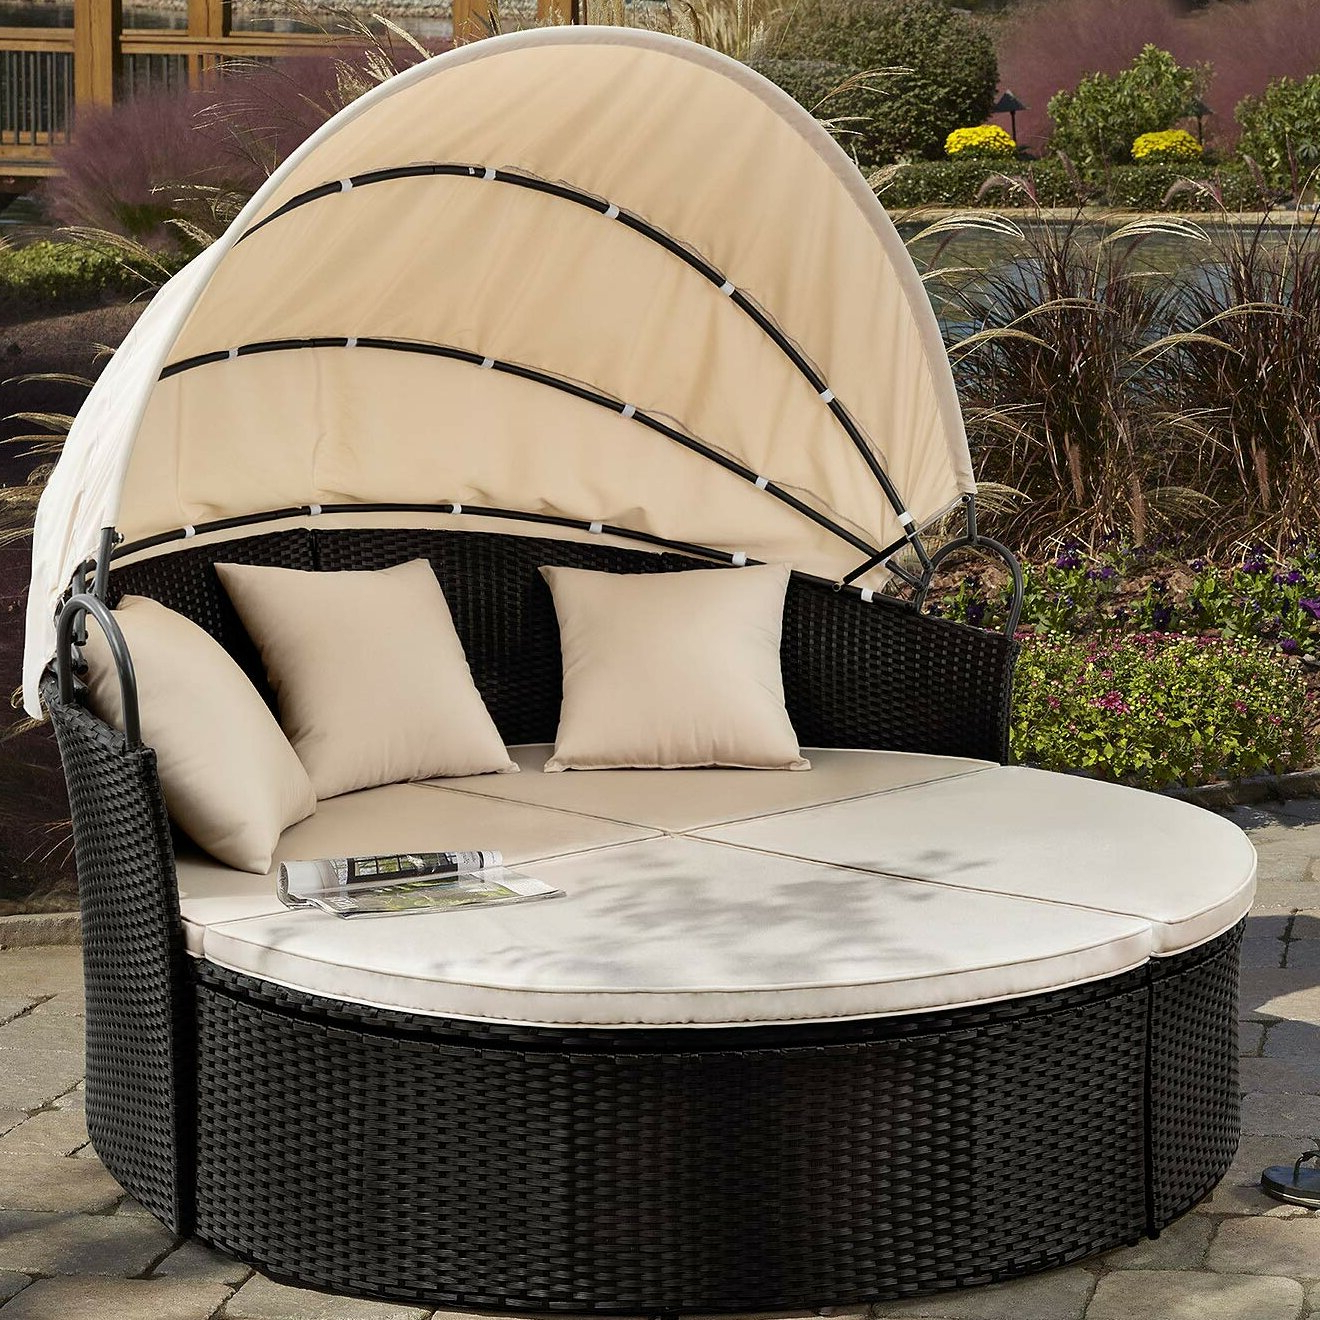 Leiston Round Patio Daybed With Cushions Intended For Fashionable Patio Daybeds With Cushions (View 9 of 20)